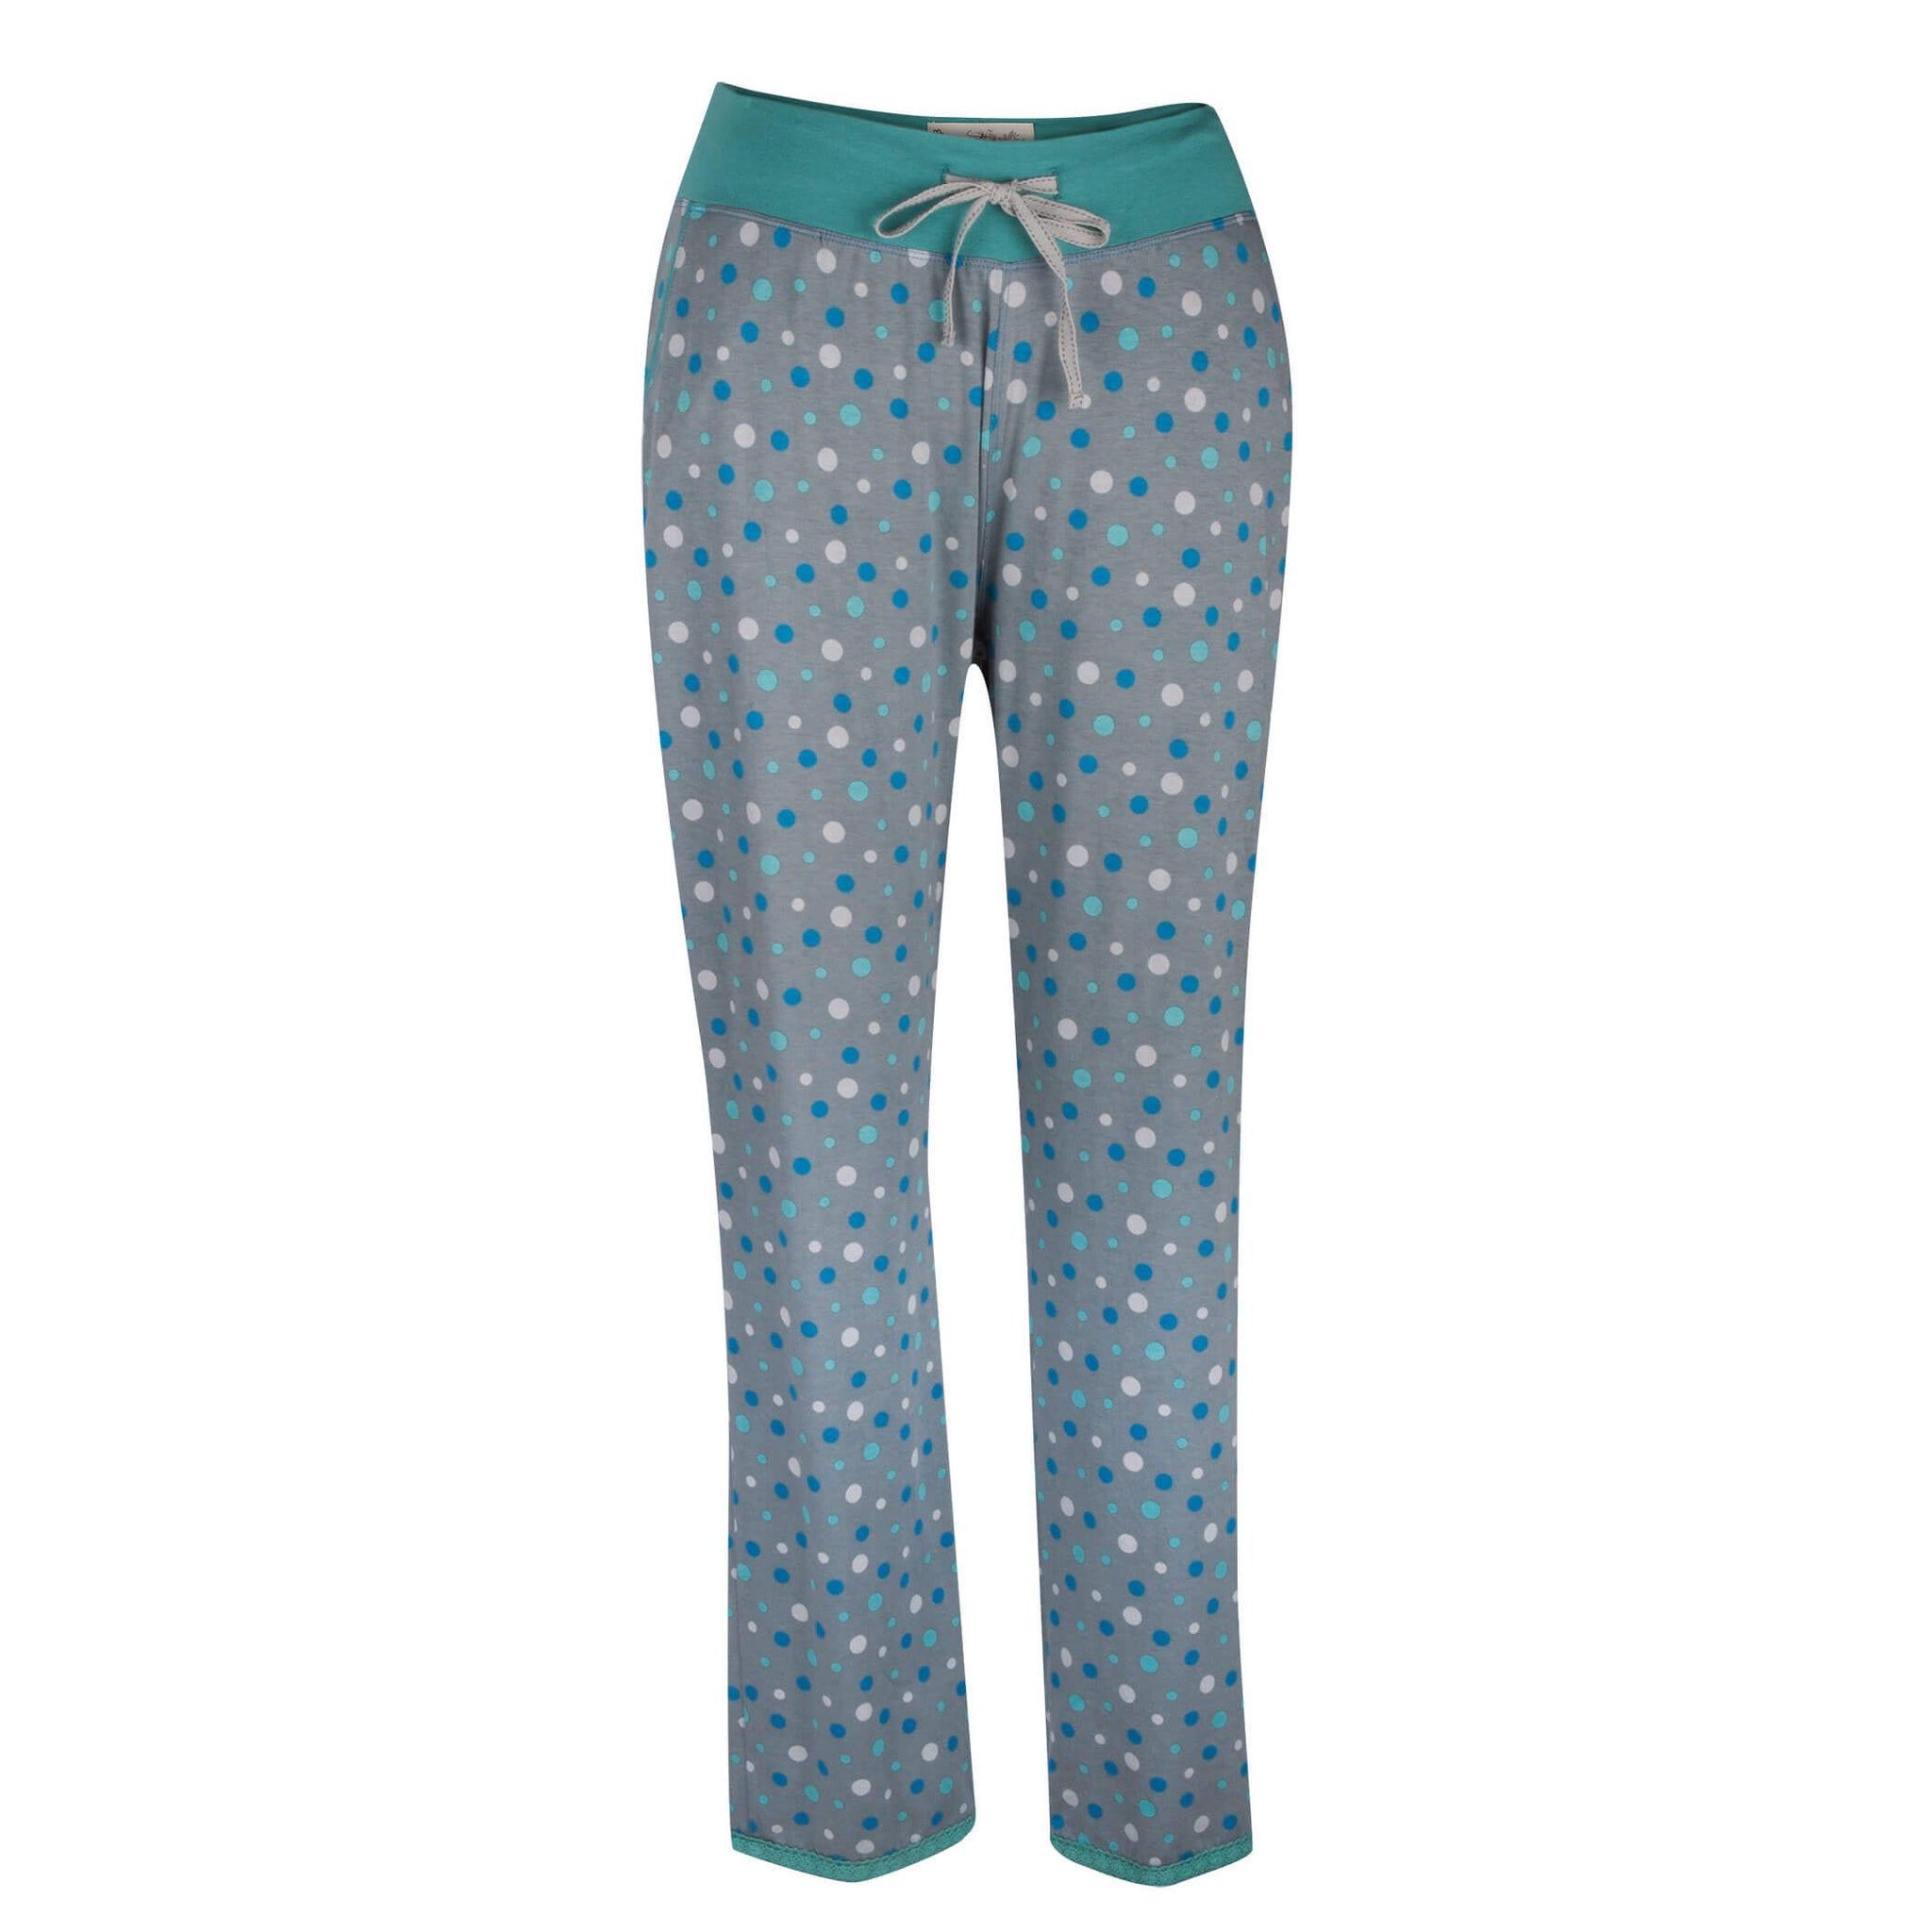 Polka Dot Sleep Pant